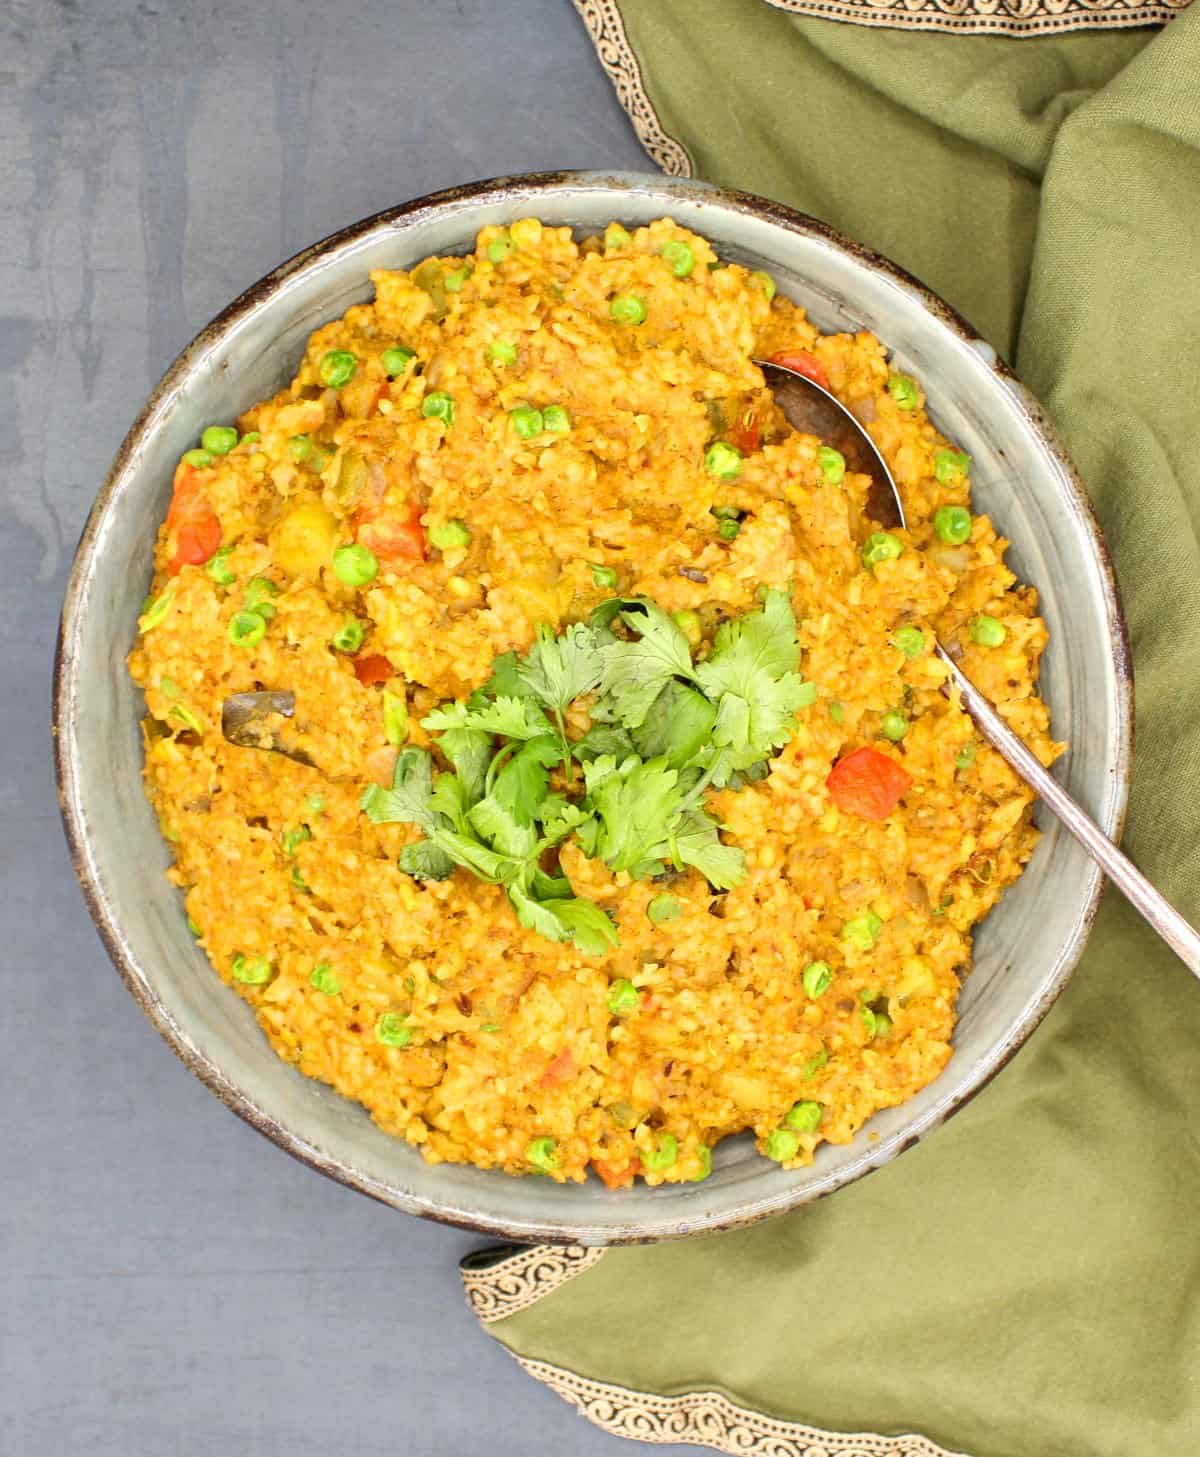 Overhead shot of a large bowl with khichdi and cilantro garnish.